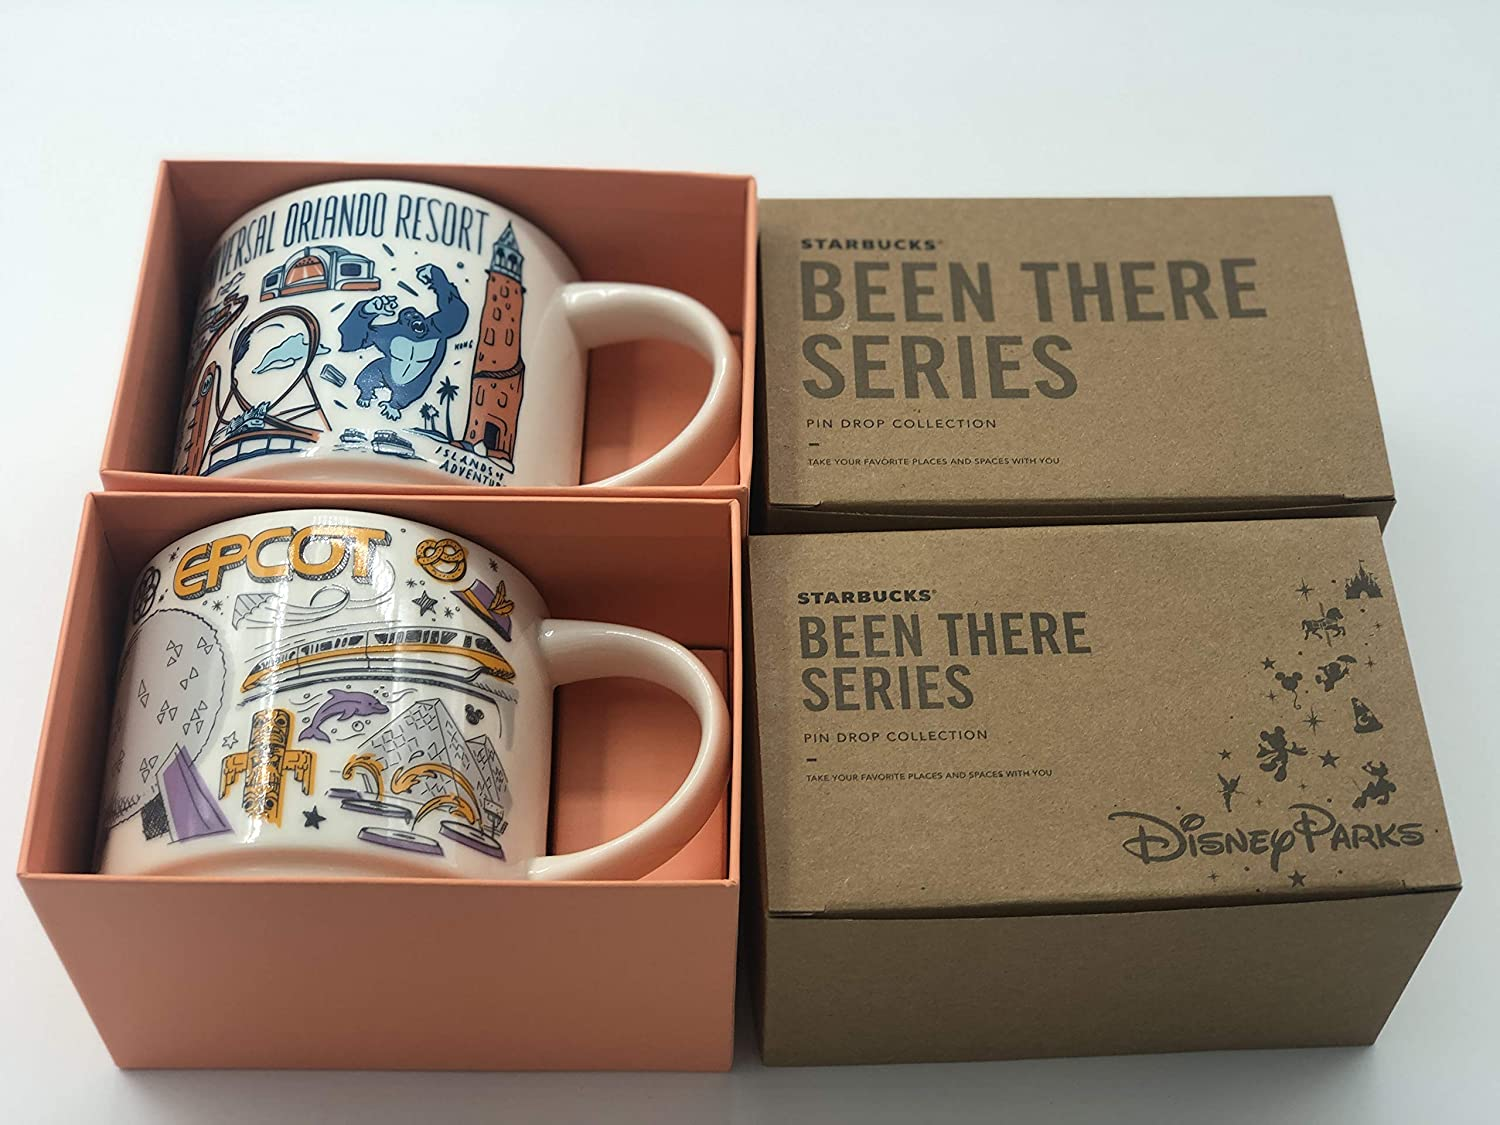 EPCOT + Universal Studios Orlando Series SBUX Been There Resort At All items free shipping the price